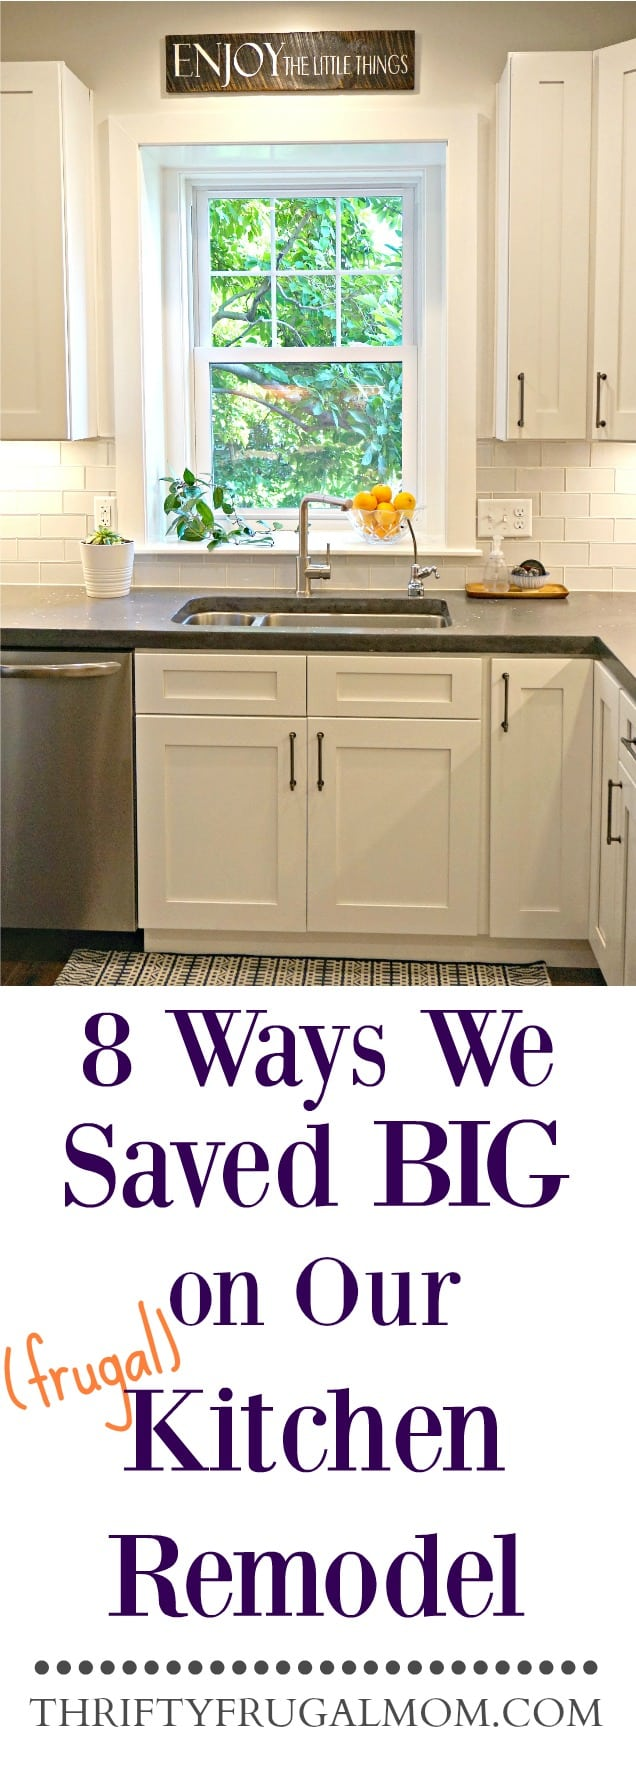 Frugal Kitchen Remodel- ways we saved